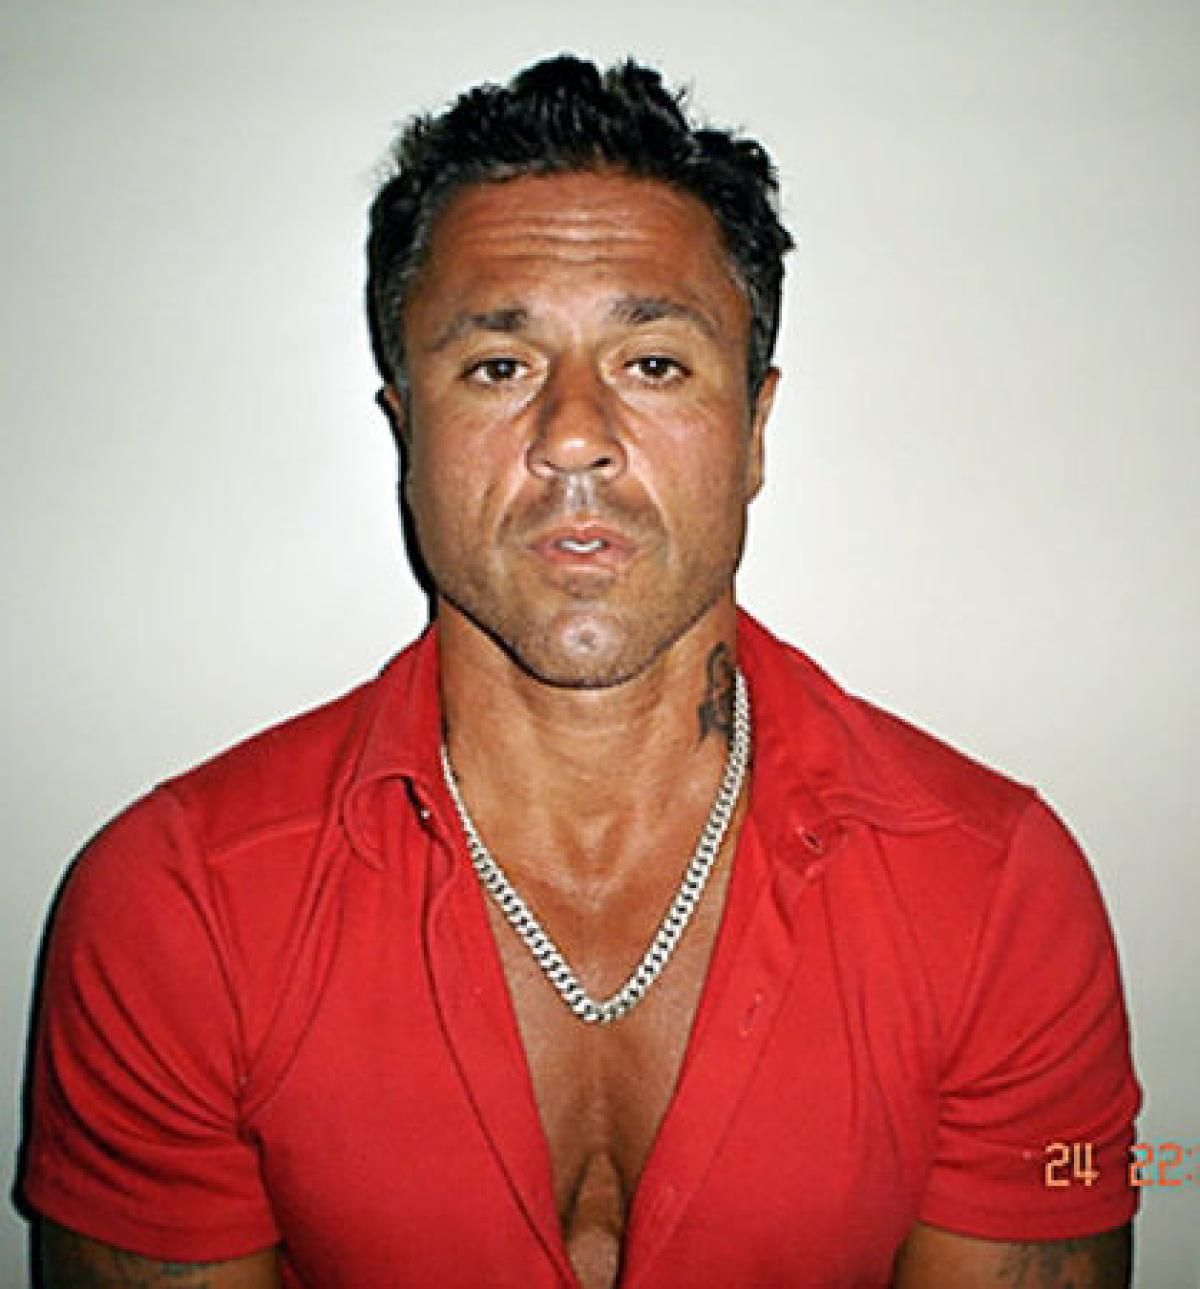 Nathan nate hill drug dealer mug shot - The Best Friend Of The Mob Scion For A Decade John Alite Implicated Gotti Jr In Murder Drug Trafficking And A Litany Of Other Crimes